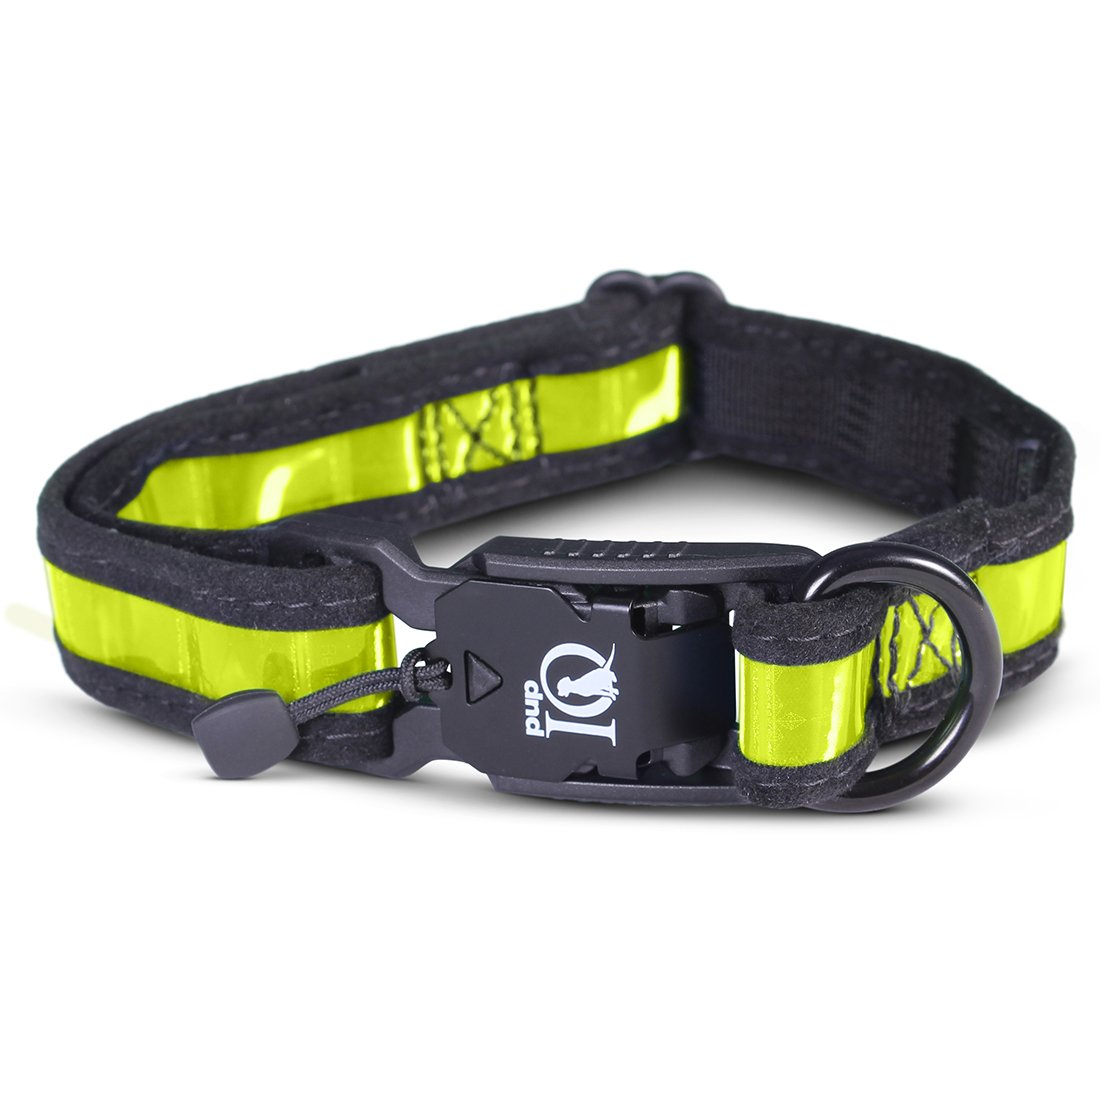 Lime Yellow Large Lime Yellow Large PUP IQ SmartPup Prisma Reflective Dog Collar, for Reflectivity and Durability, Lime Yellow, Large